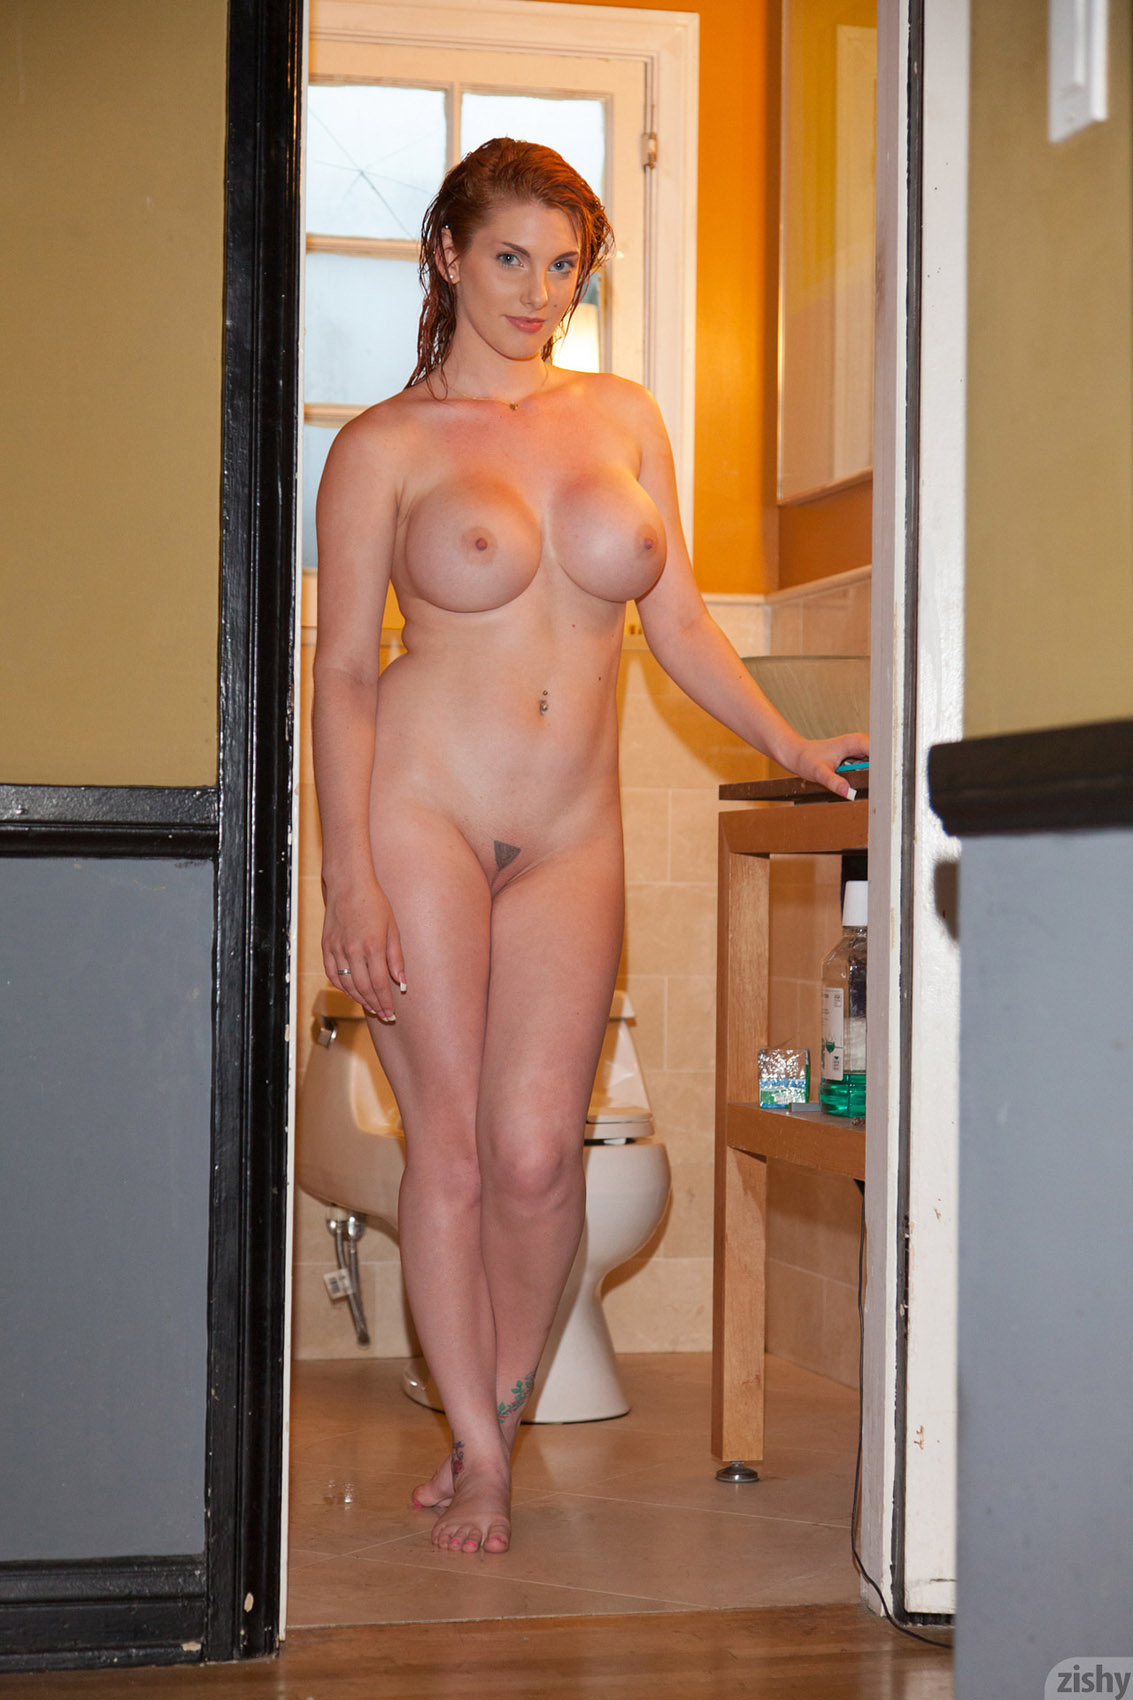 sexy women sex in the shower